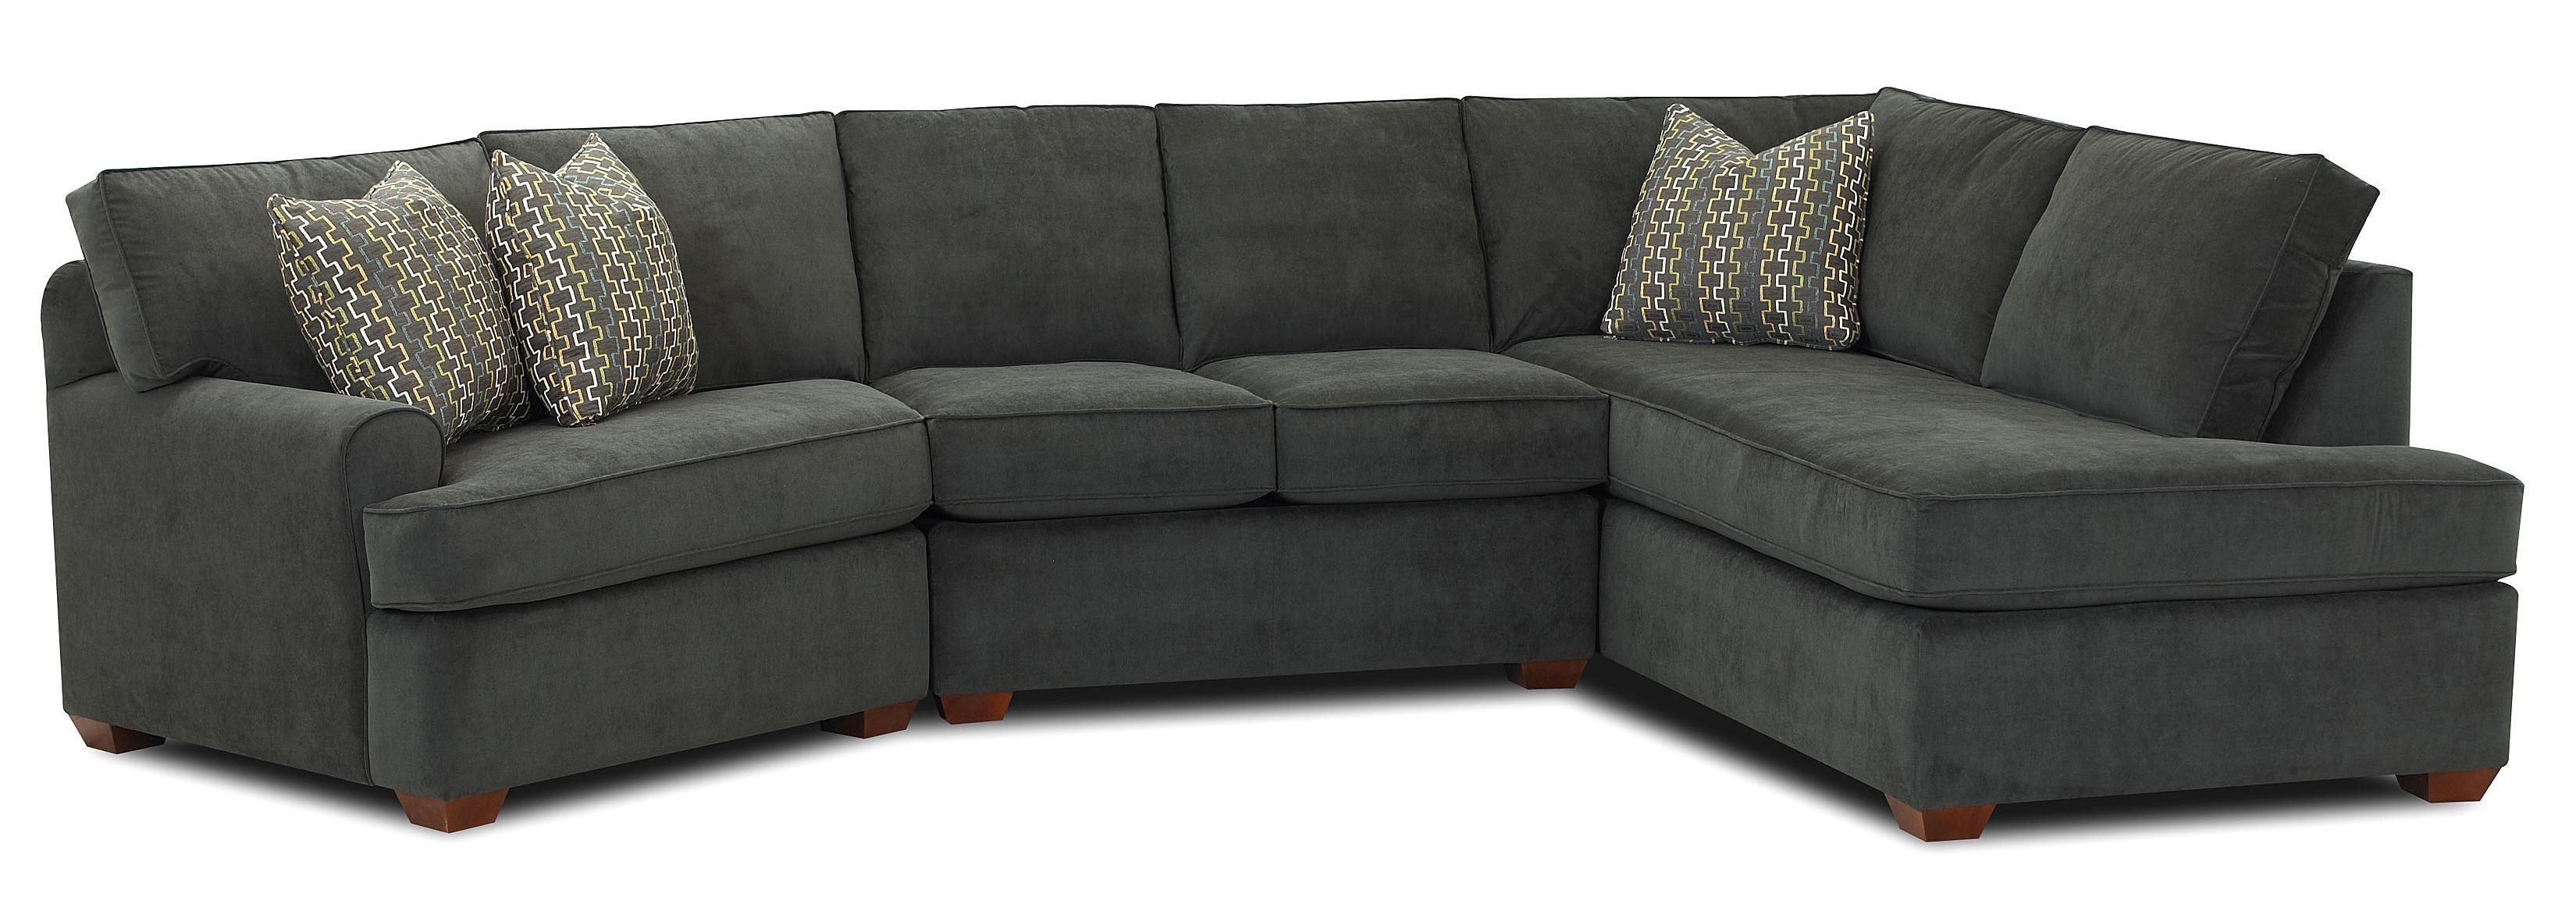 Chaise Sectional Sofa | Tehranmix Decoration Throughout Green Sectional Sofa With Chaise (View 7 of 15)